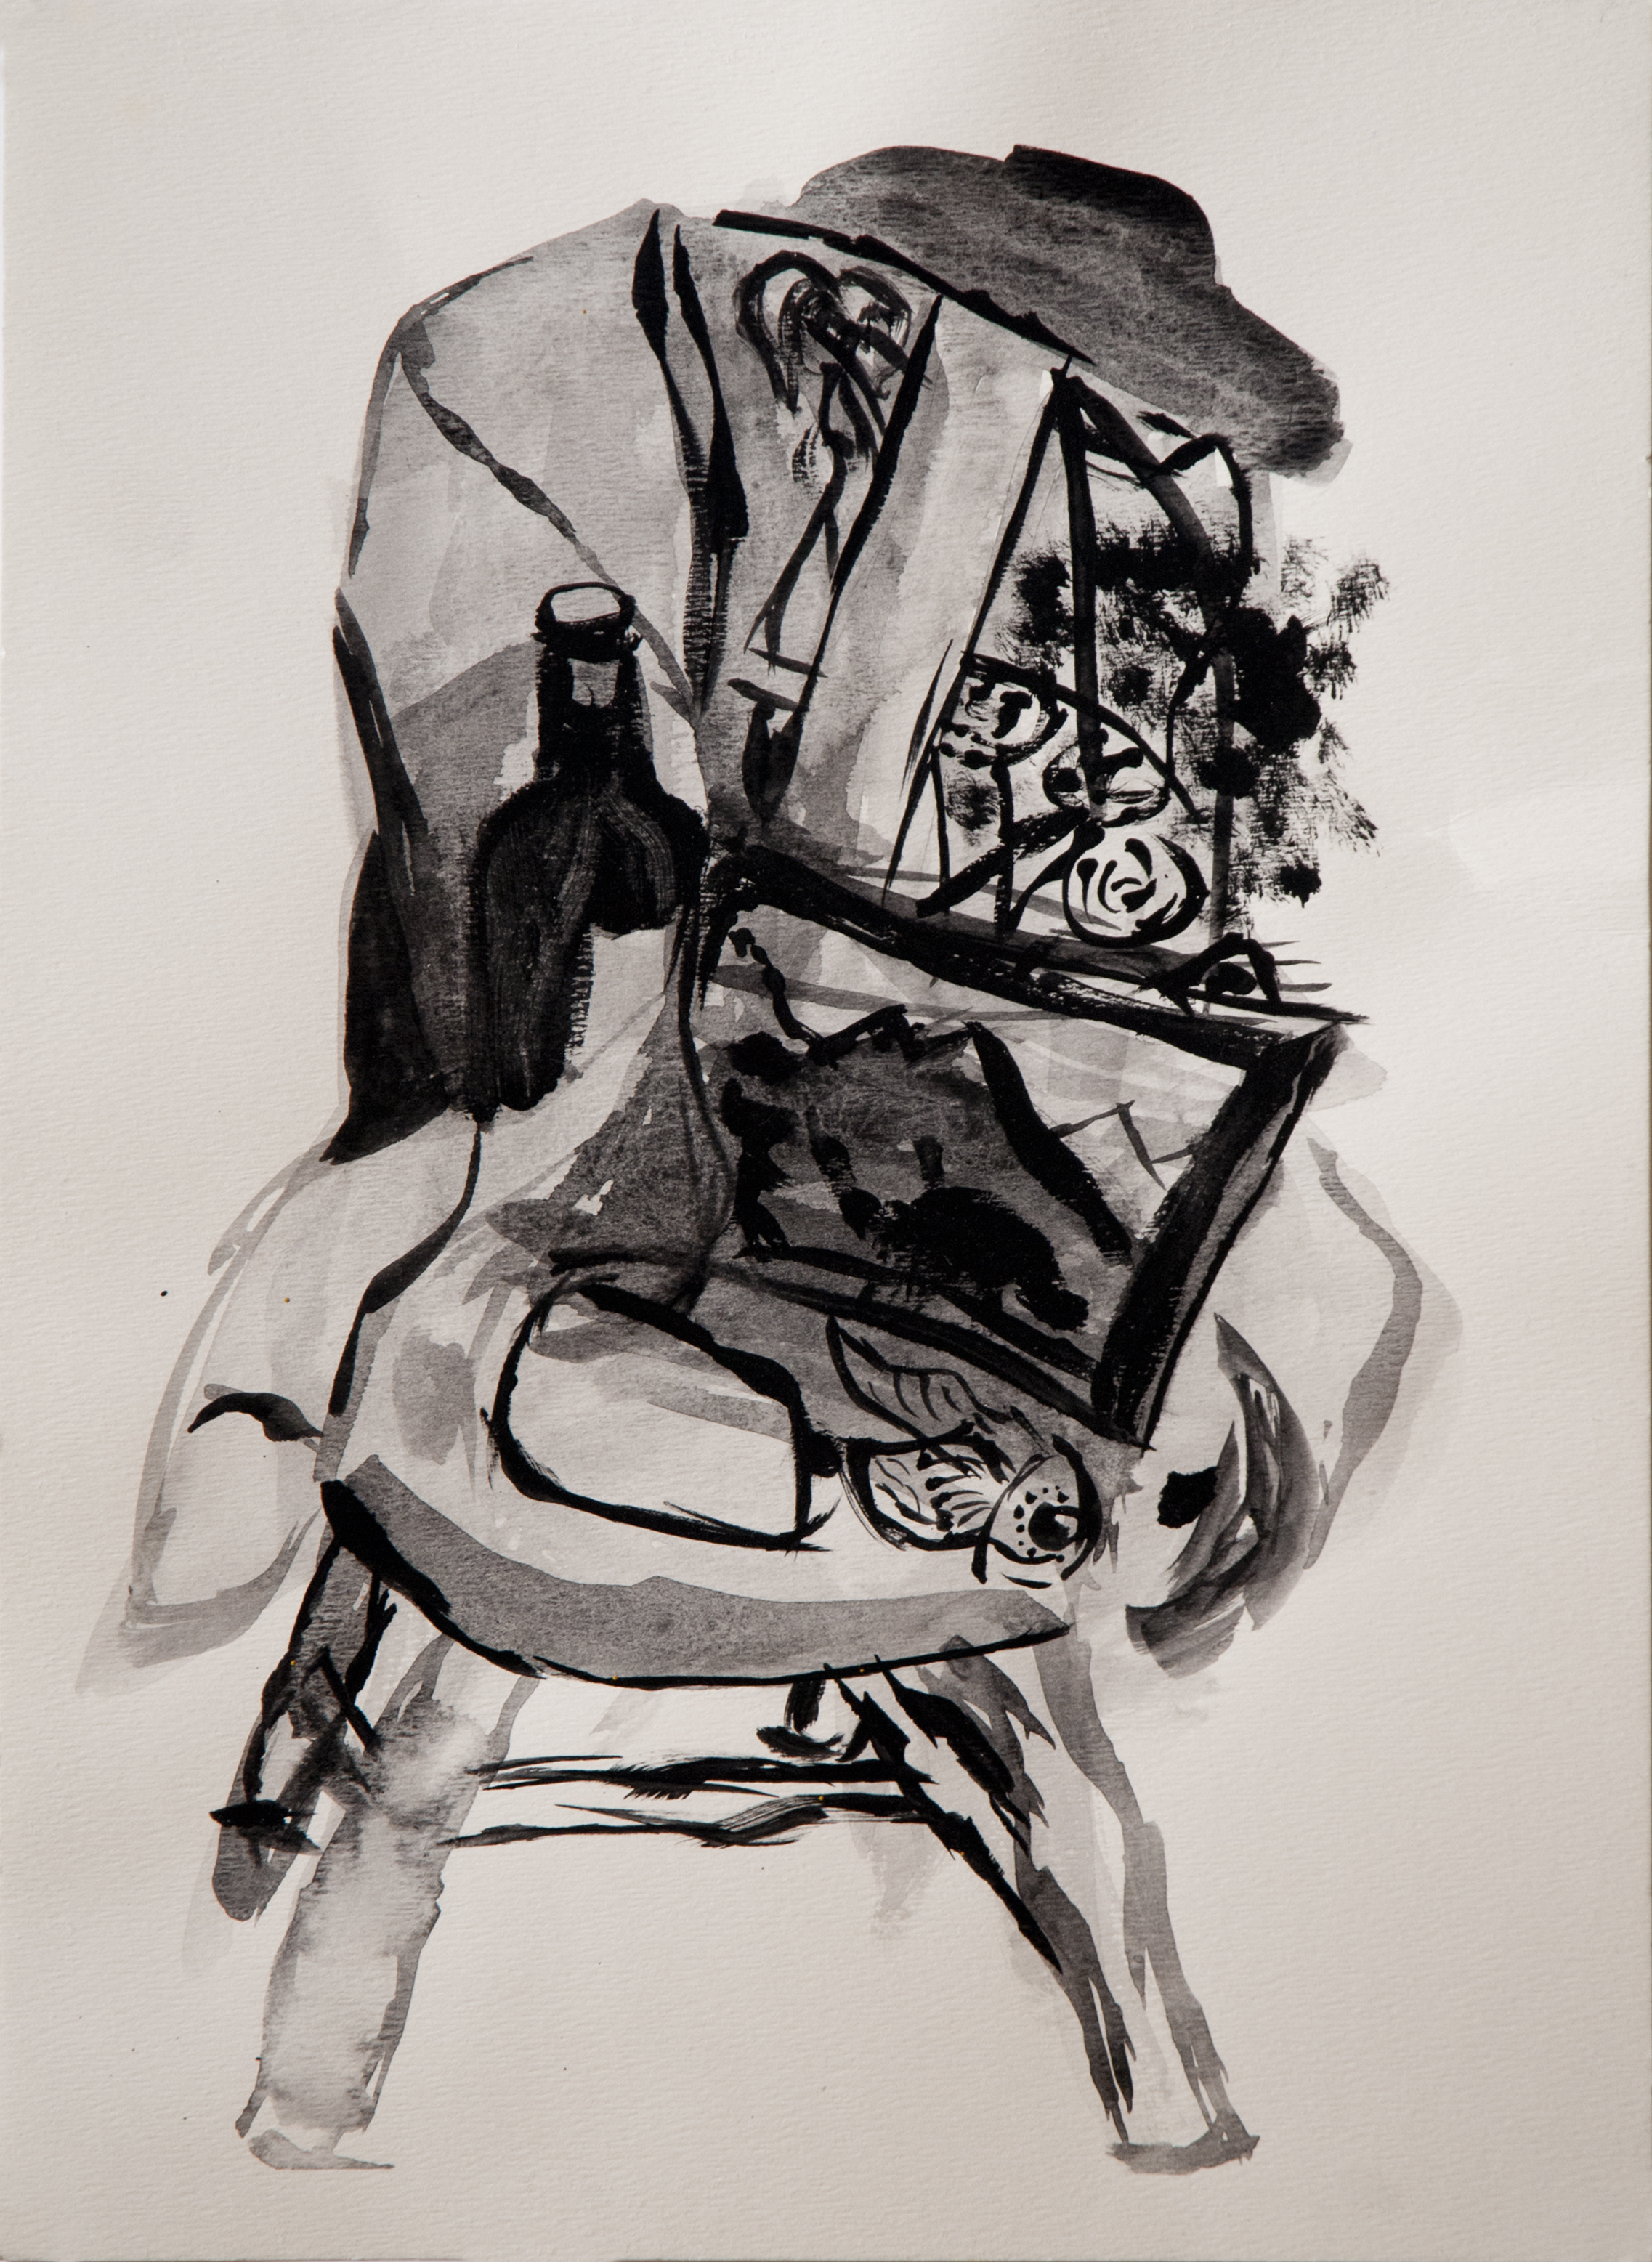 "(Study for) Still Life with Wine / 30"" tall x 22"" wide, gouache on paper"